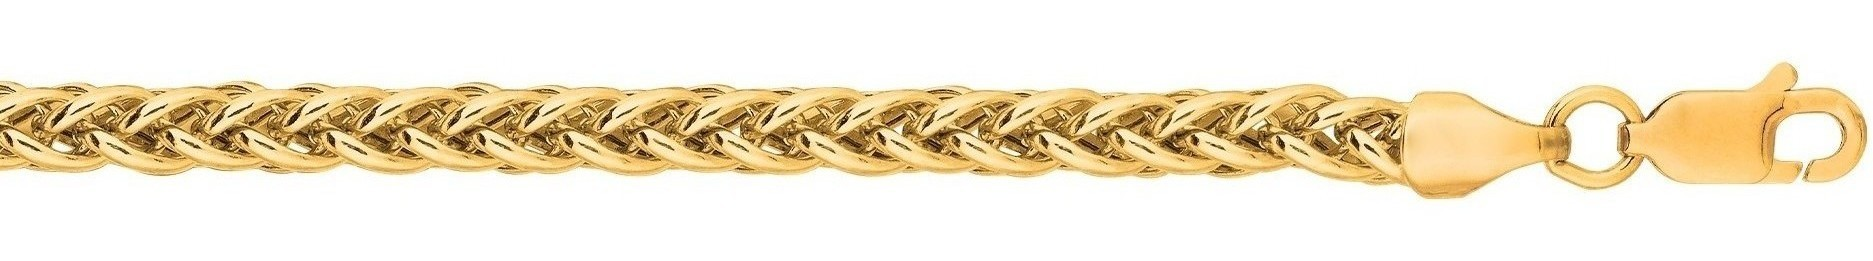 "20"" 14K Yellow Gold 3.3mm (1/8"") Polished Diamond Cut Light Weight Wheat Chain w/ Lobster Clasp"